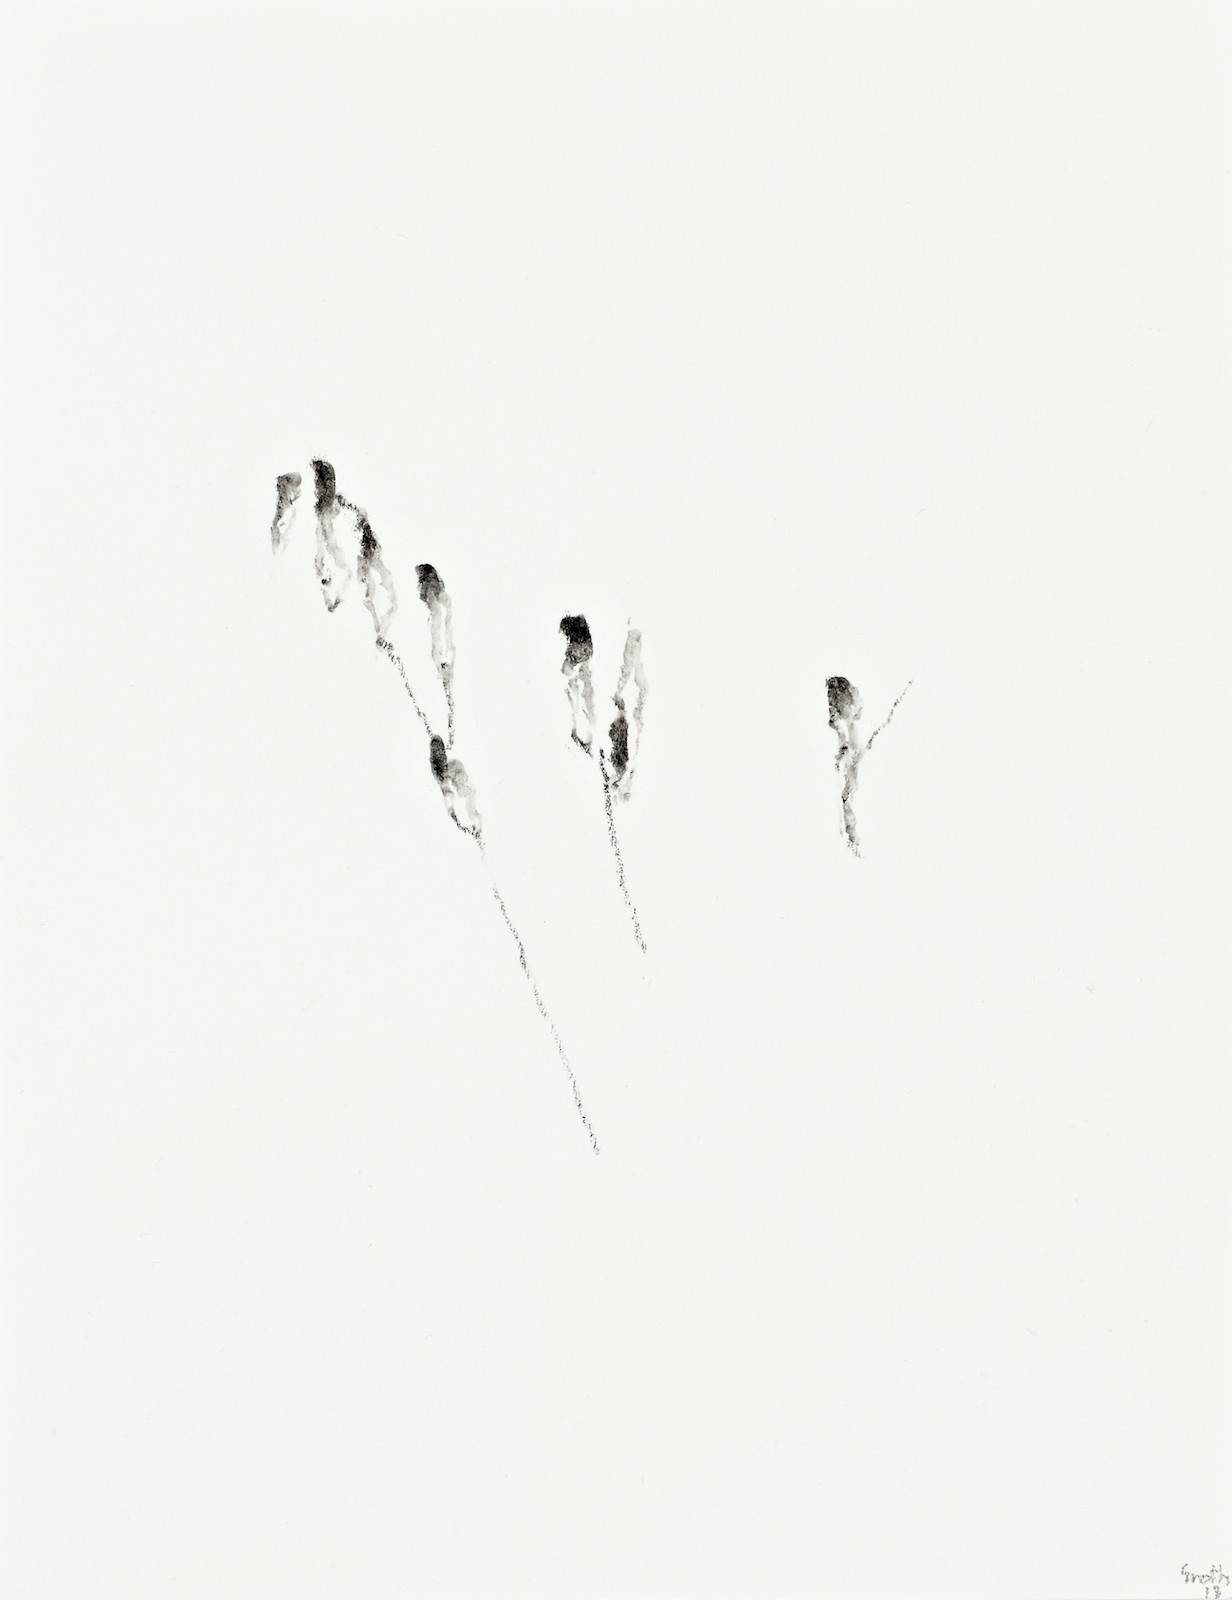 Untitled, 2013, crayon on paper, 27,7 x 21,5 cm